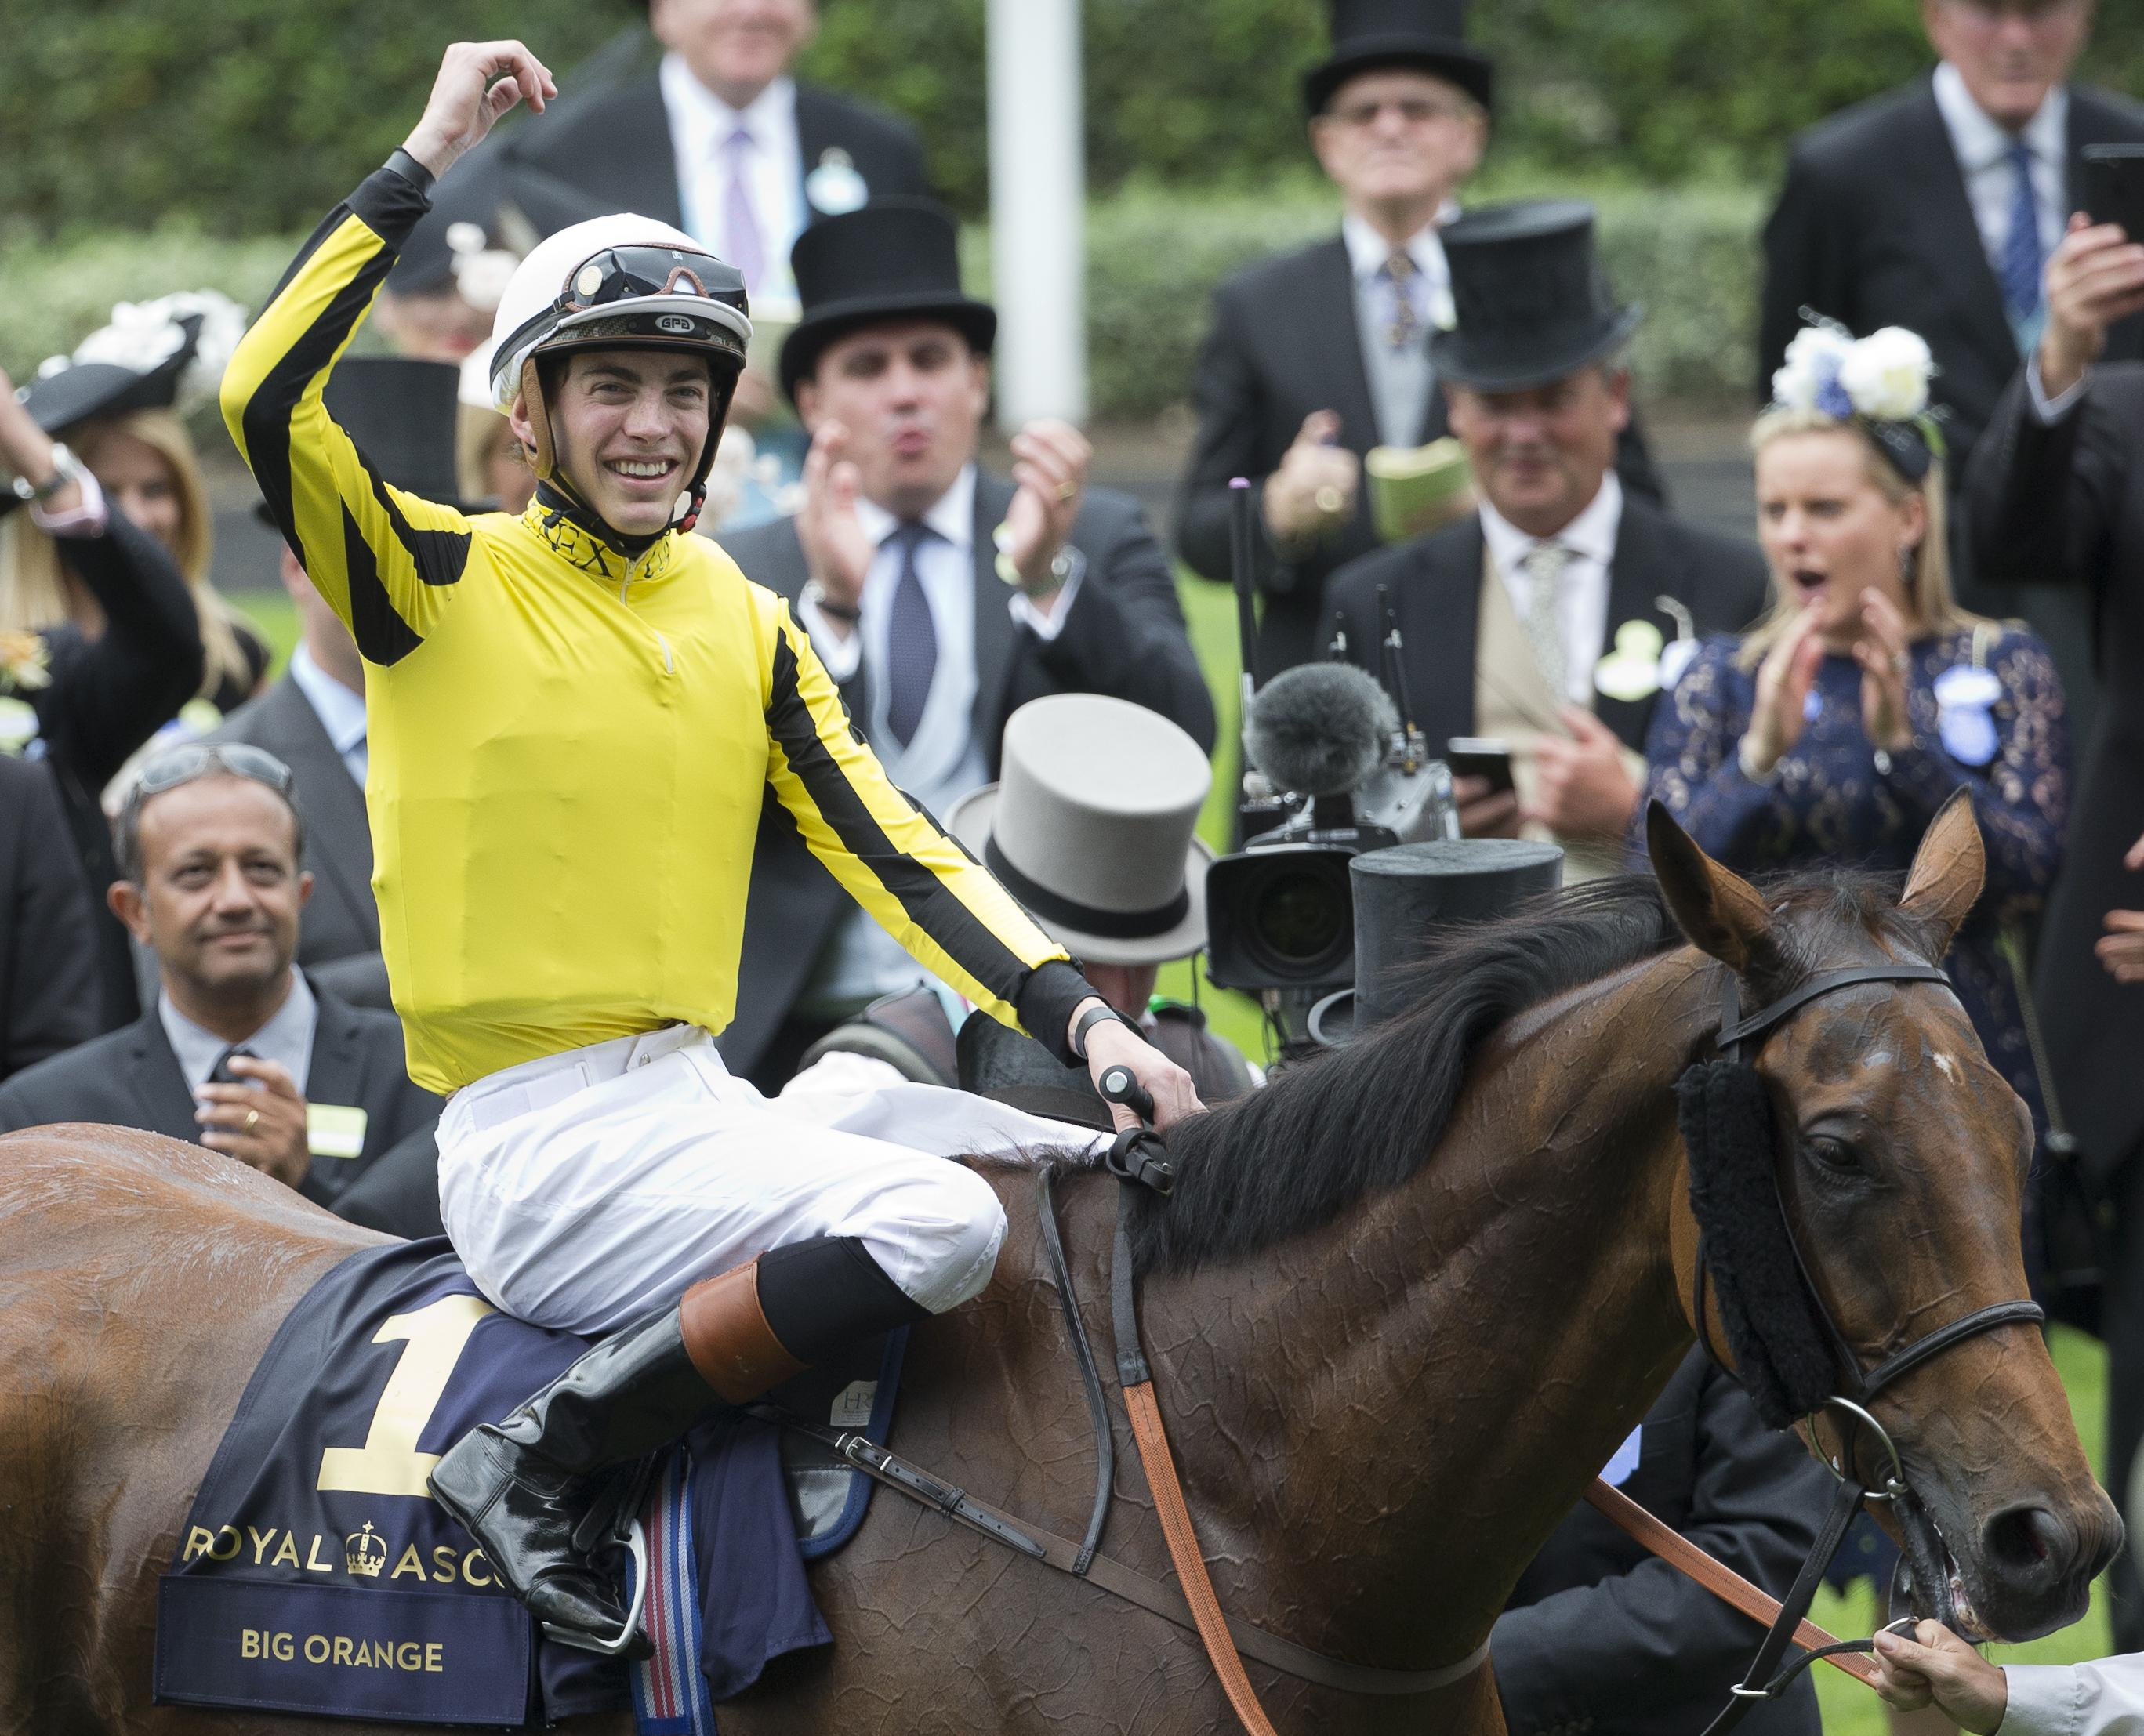 Big Orange and jockey James Doyle after winning last year's Gold Cup